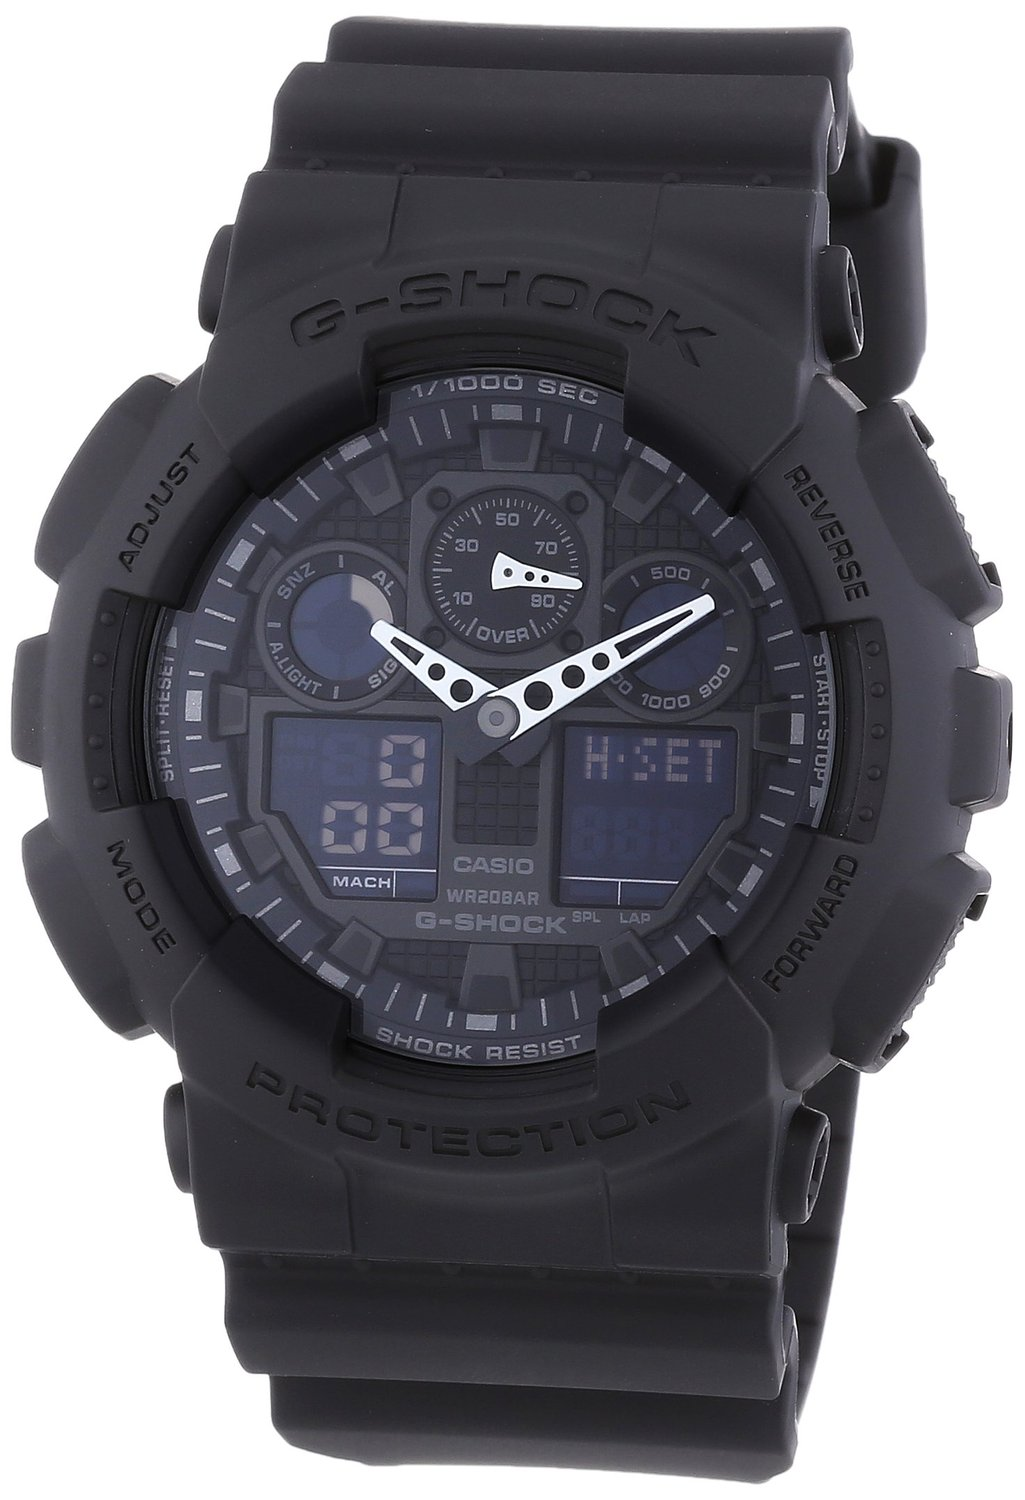 casio g shock ga 100 1a1er s lection caract ristiques et prix sportoza. Black Bedroom Furniture Sets. Home Design Ideas